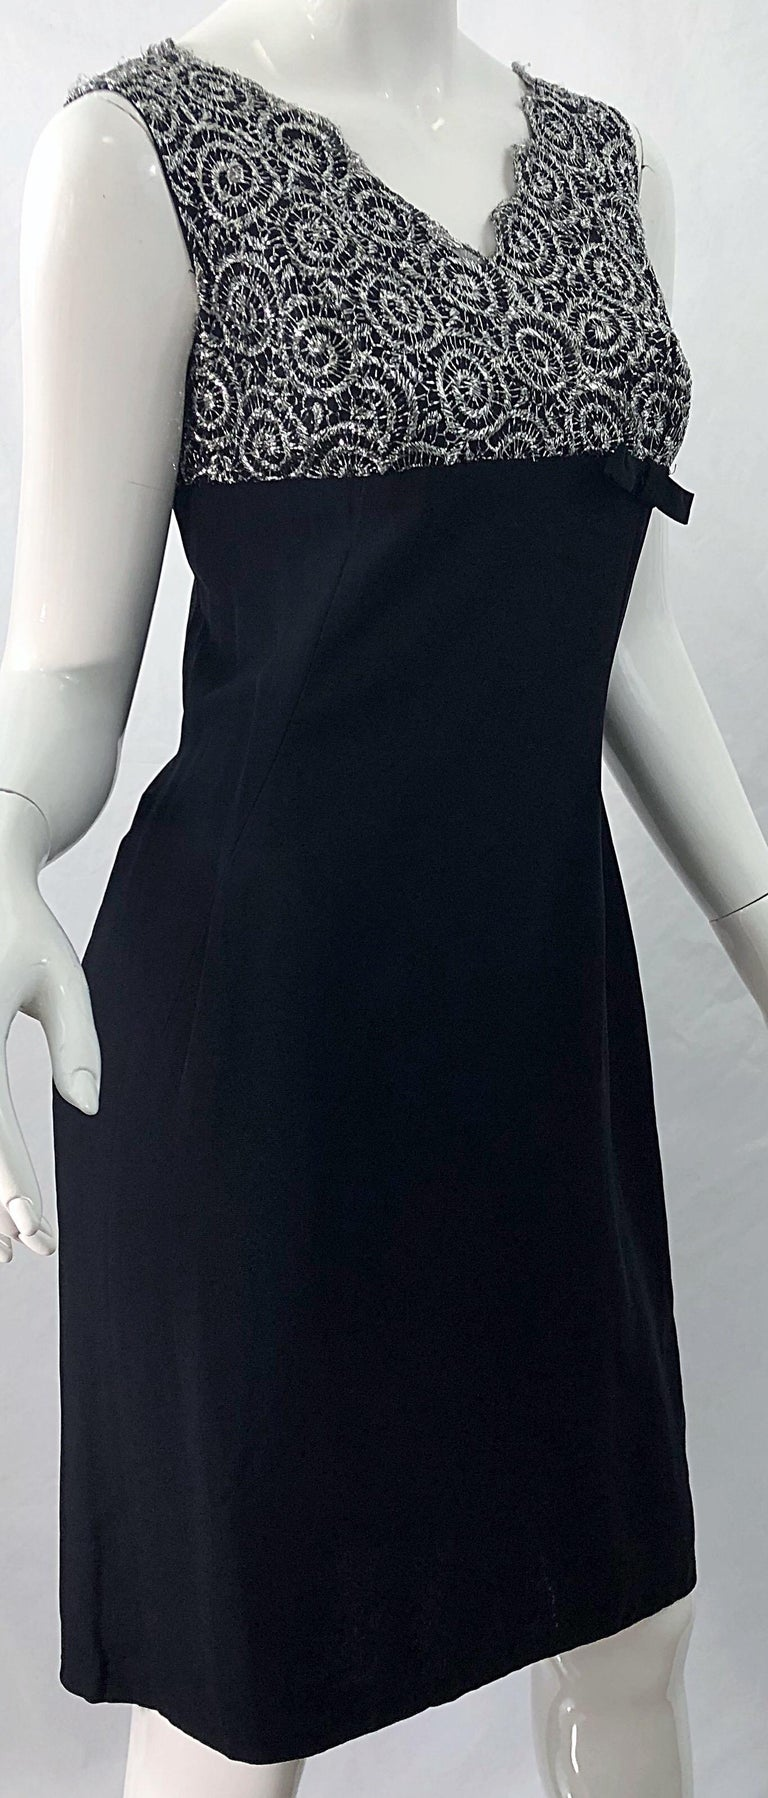 Chic 1960s Black and Silver Metallic Lace Rayon Crepe Vintage 60s Sheath Dress For Sale 1